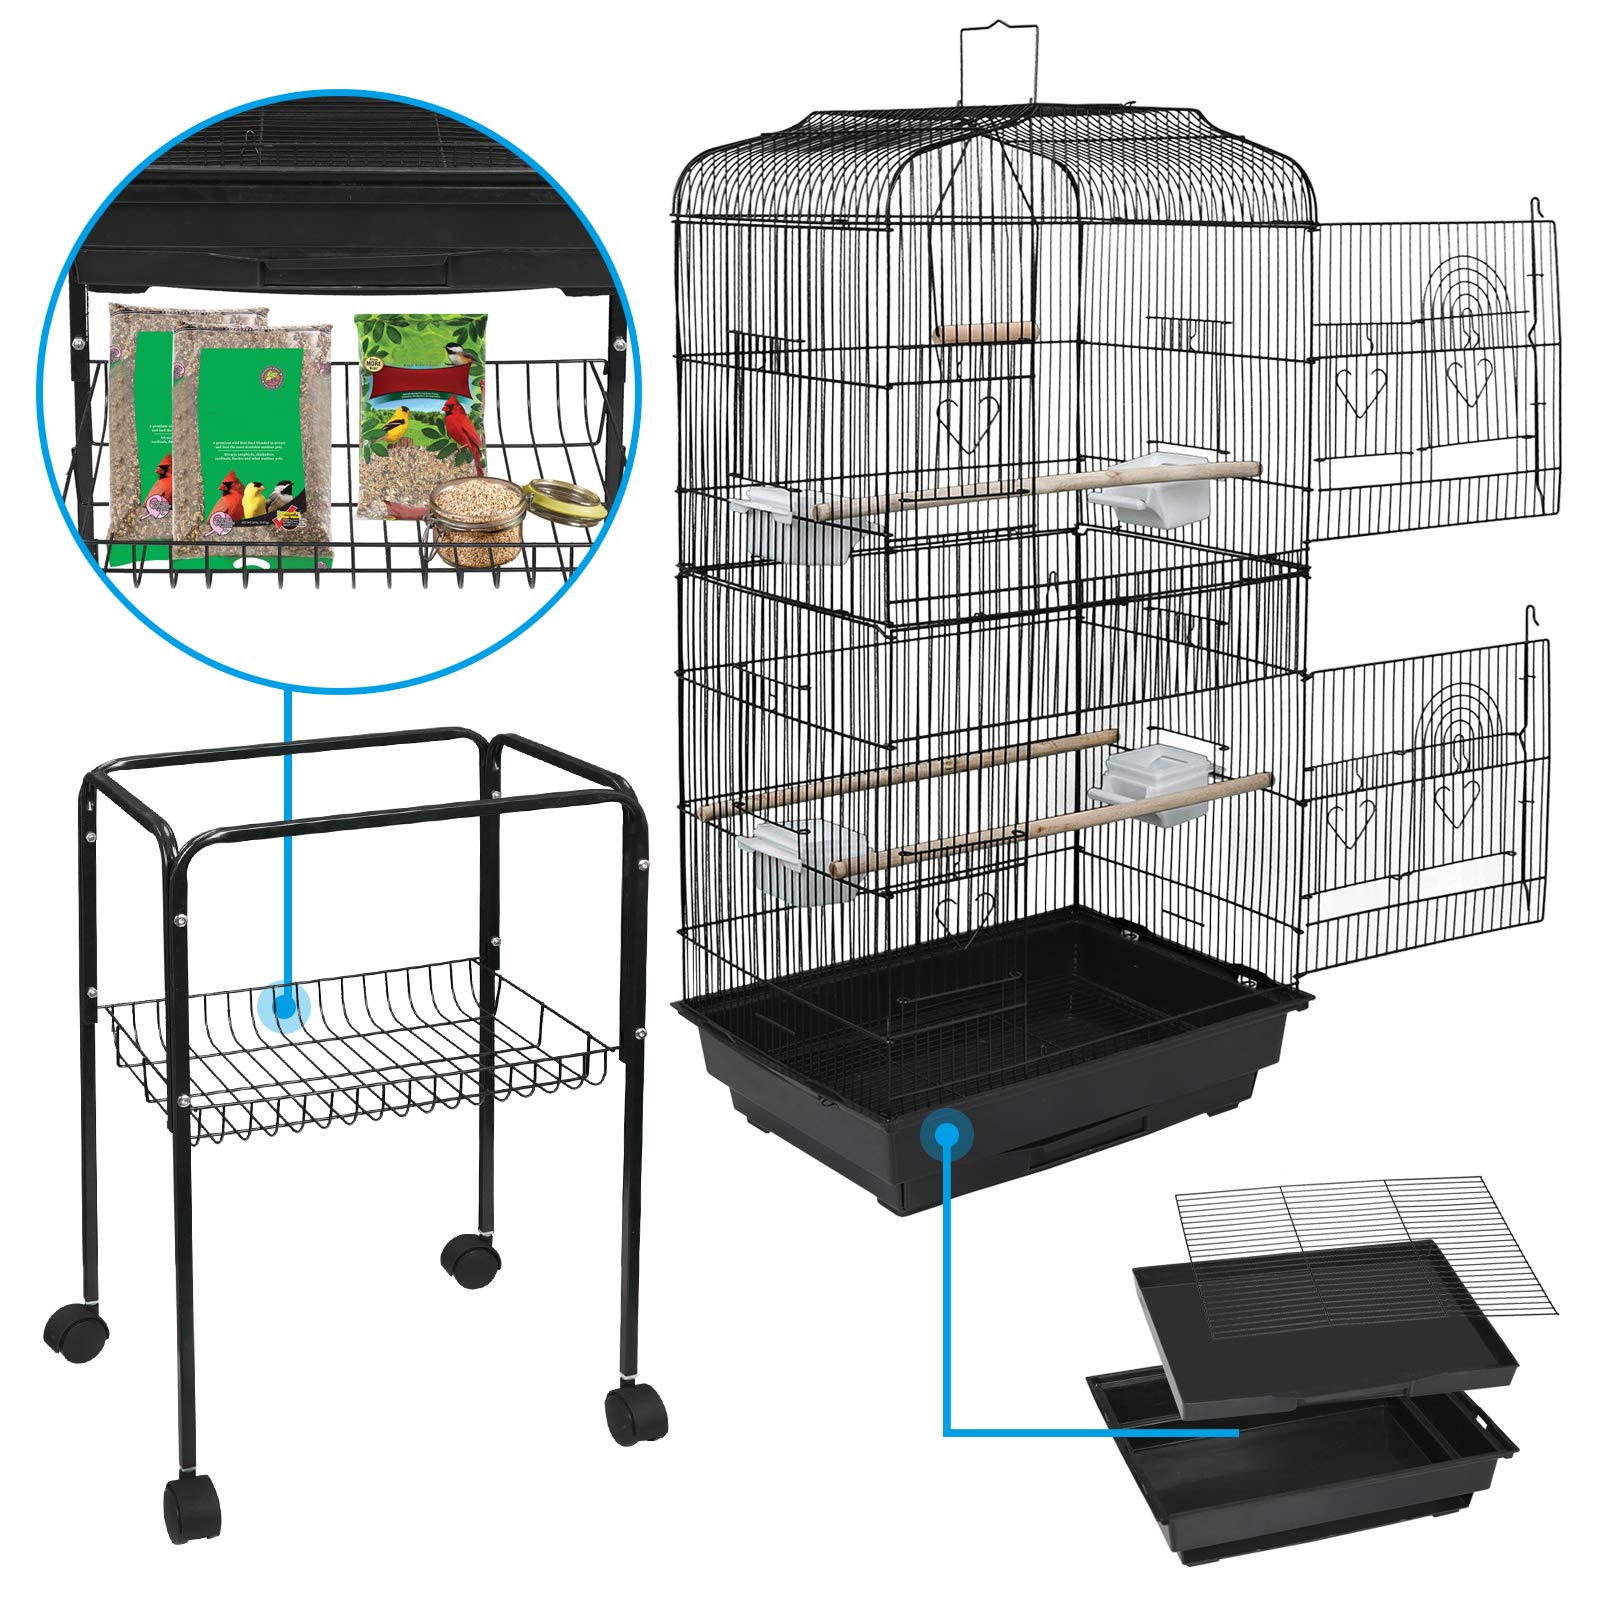 SUPER DEAL 60'' Bird Cage Large Wrought Iron Cage for Cockatiel Sun Conure Parakeet Finch Budgie Lovebird Canary Medium Pet House with 31'' Rolling Stand (60'') by SUPER DEAL